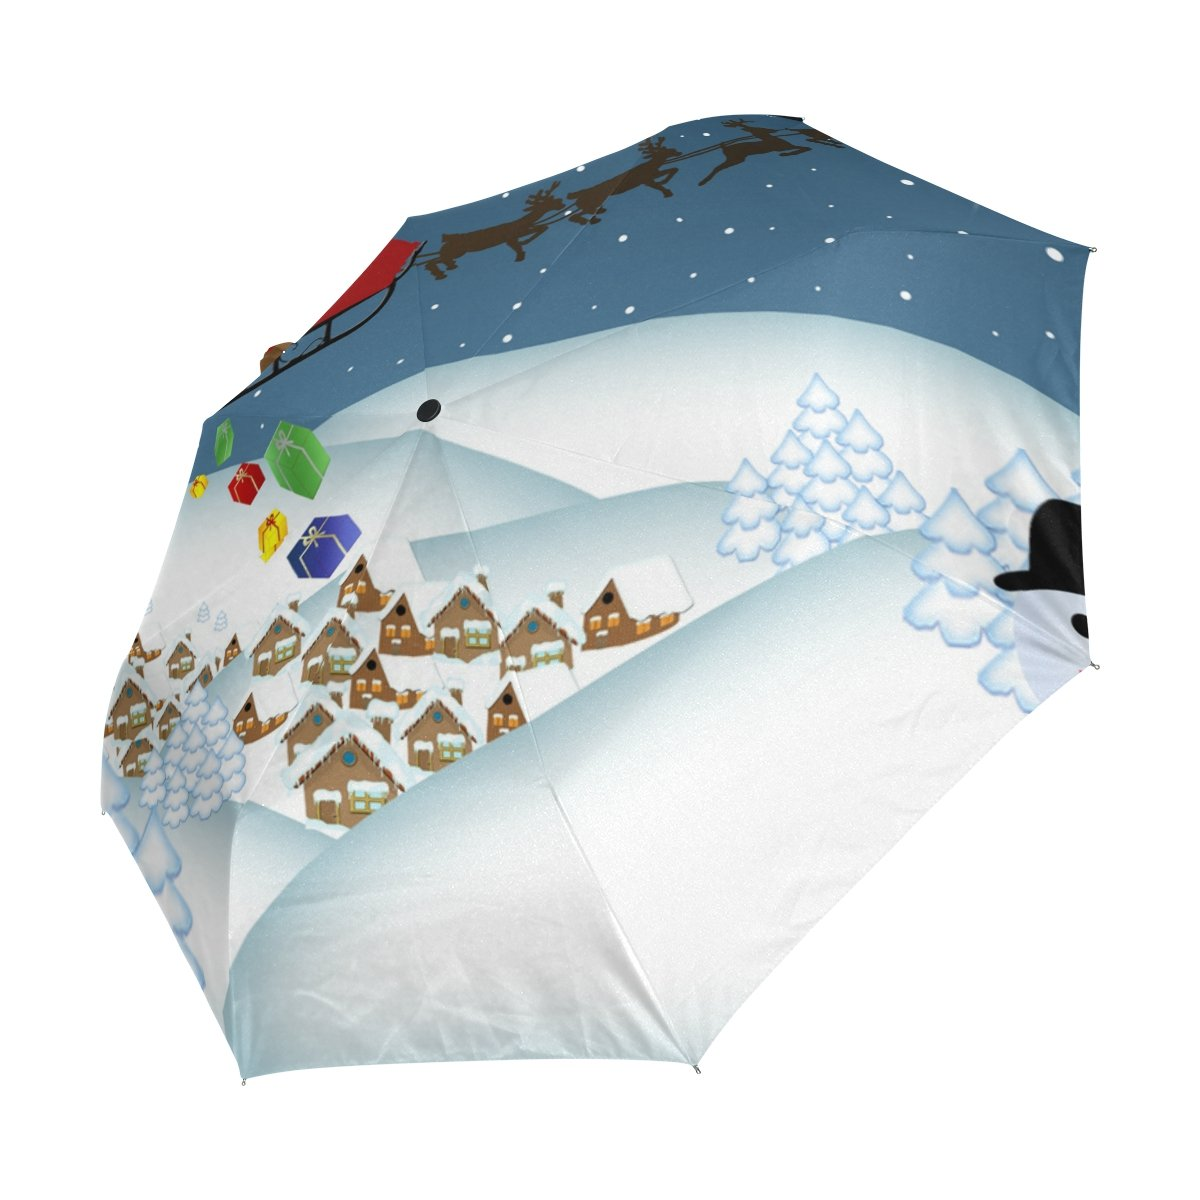 d339737e87b6 Amazon.com : imobaby Santa Christmas Indestructible Windproof ...